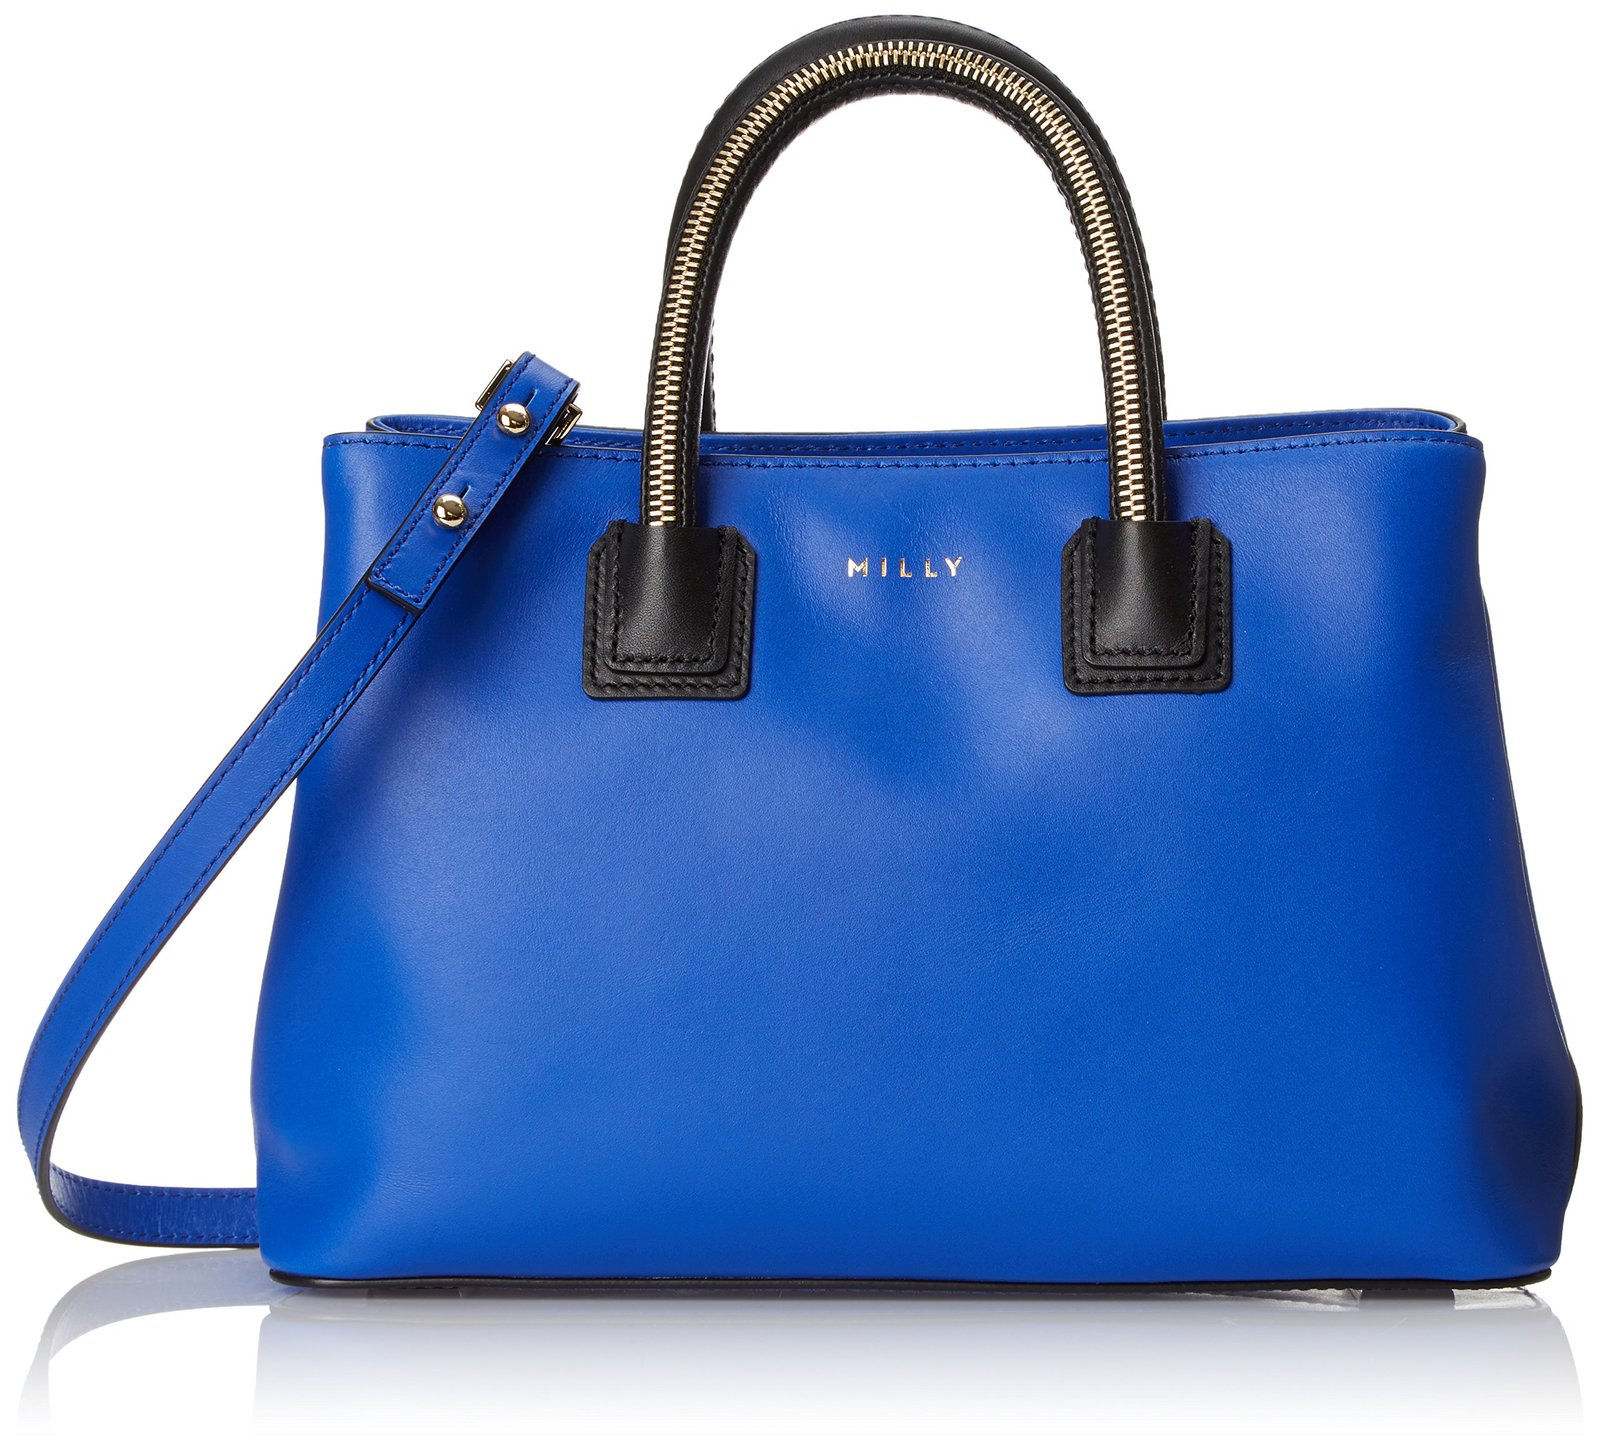 MILLY New Logan Zip Small Tote, French Blue, One Size